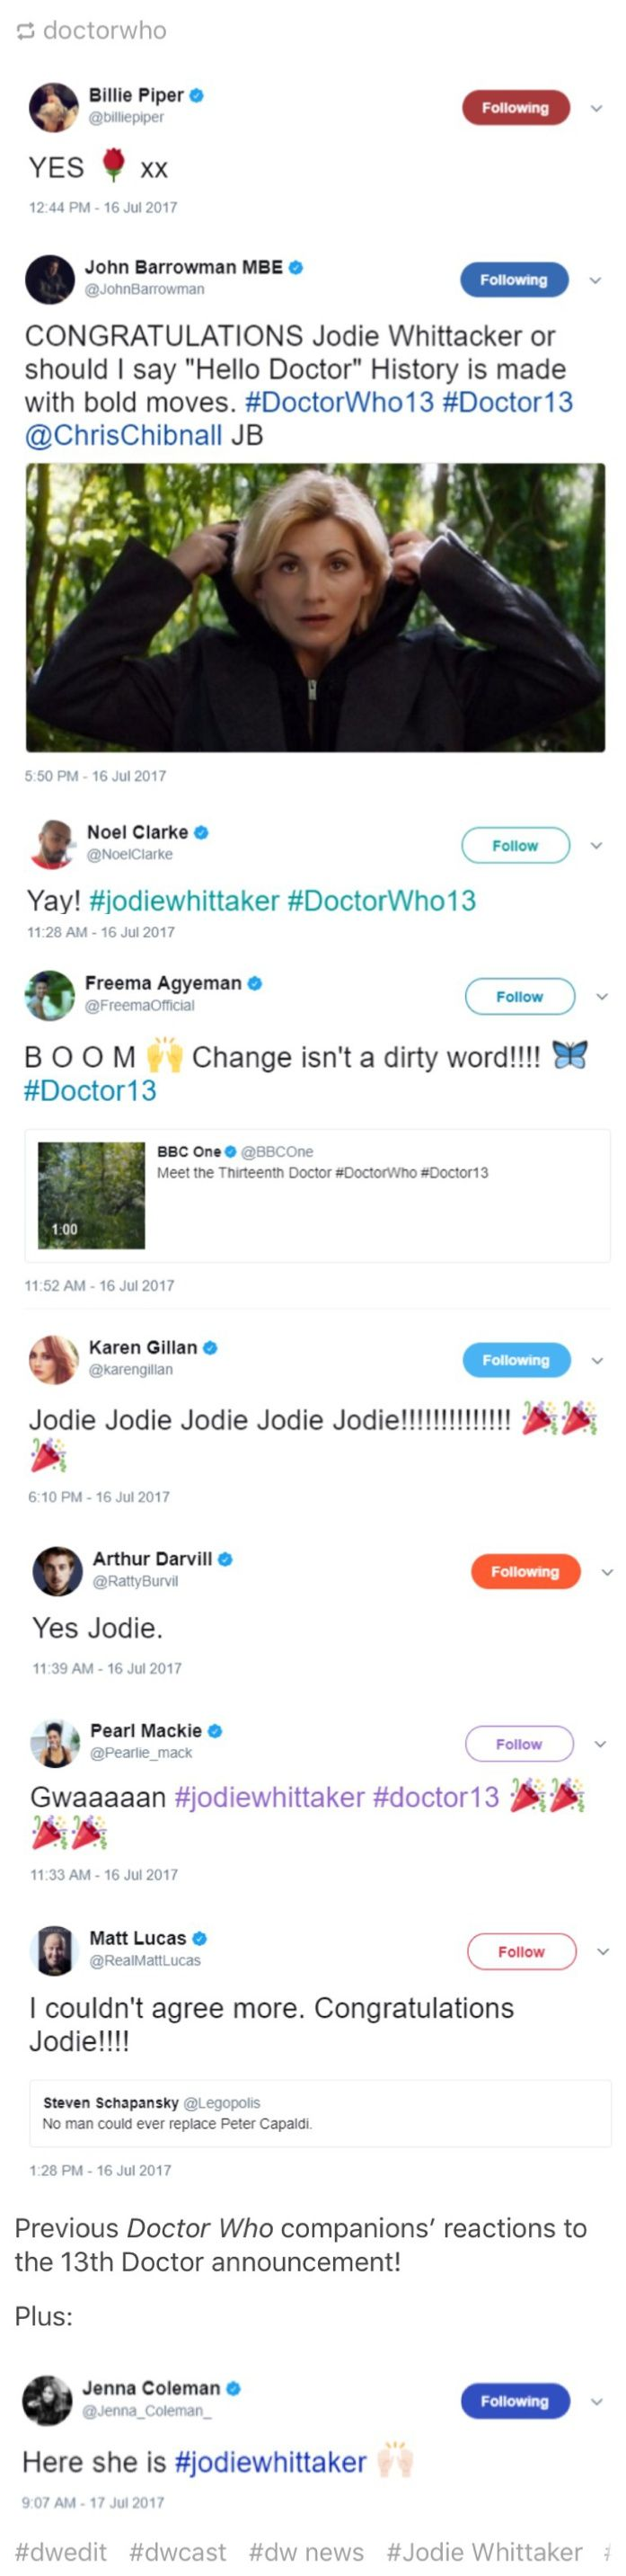 Previous Doctor Who companions' reactions to the 13th Doctor announcement! regenerationofthedoctor.tumblr.com